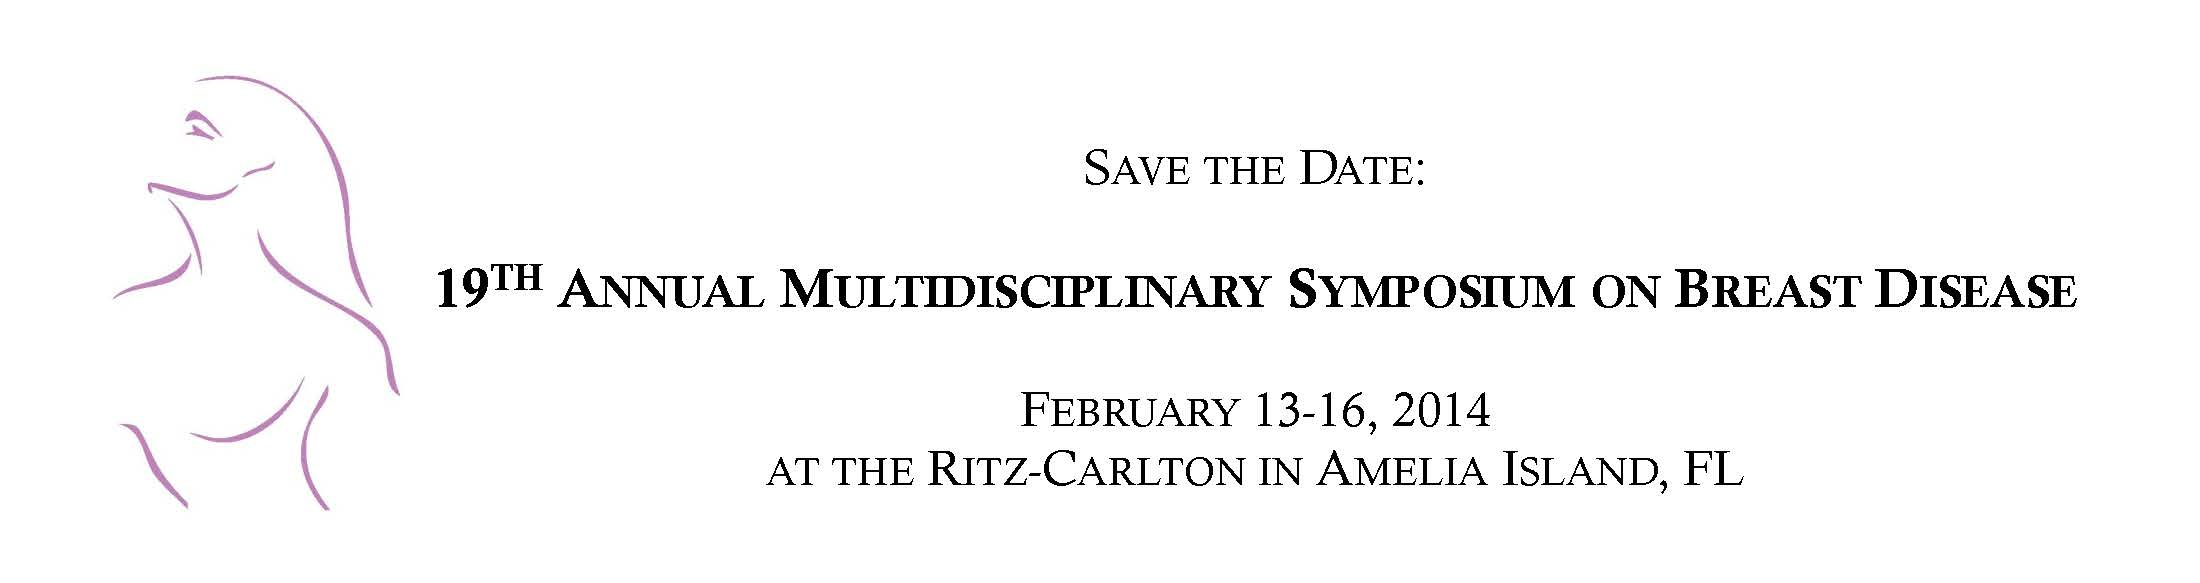 Multidisciplinary Symposium on Breast Disease